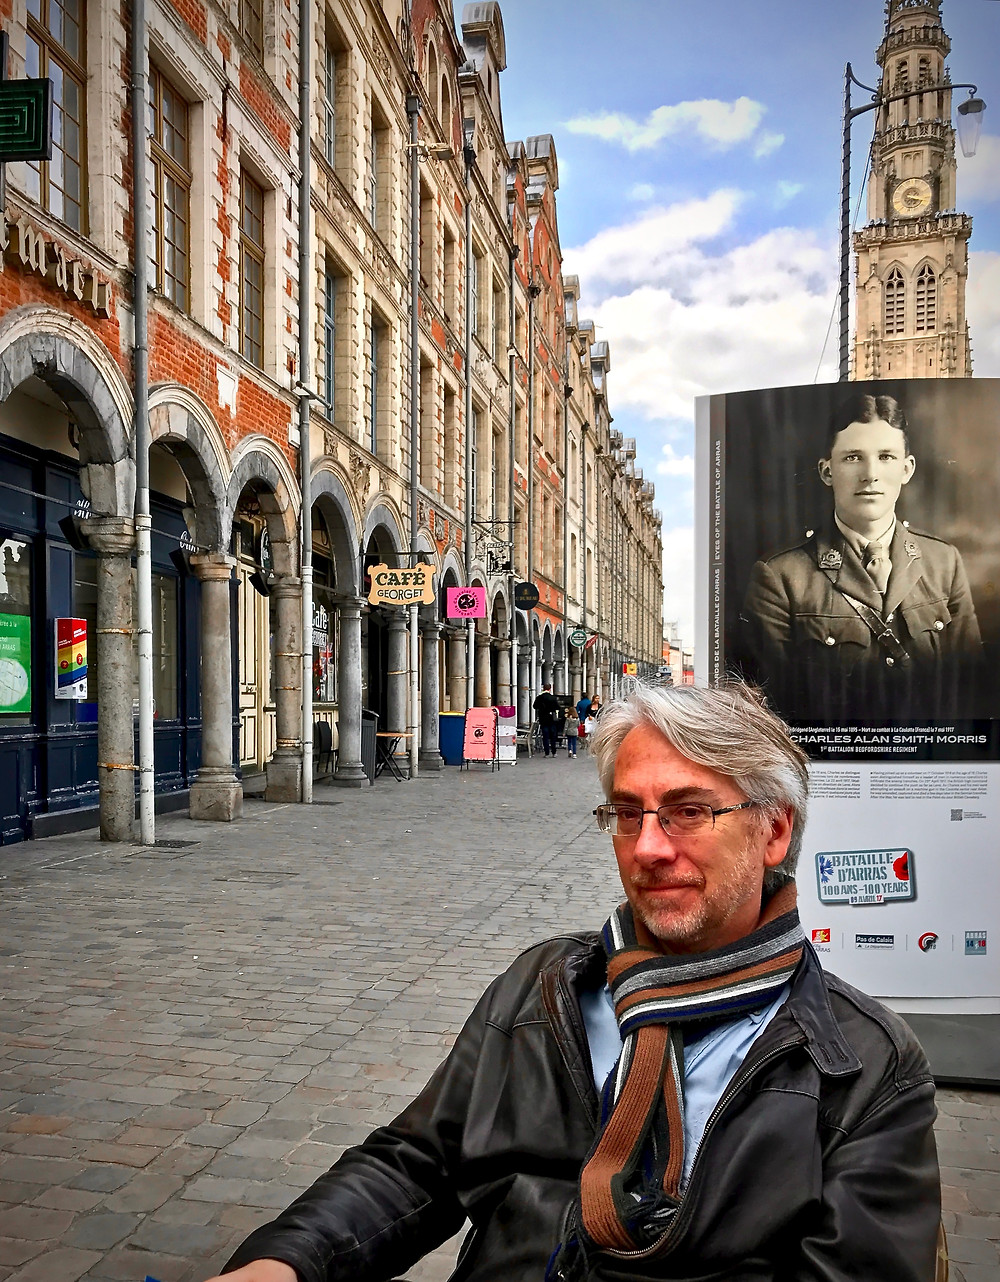 my BFF looking dashing in Arras on the Grand Place